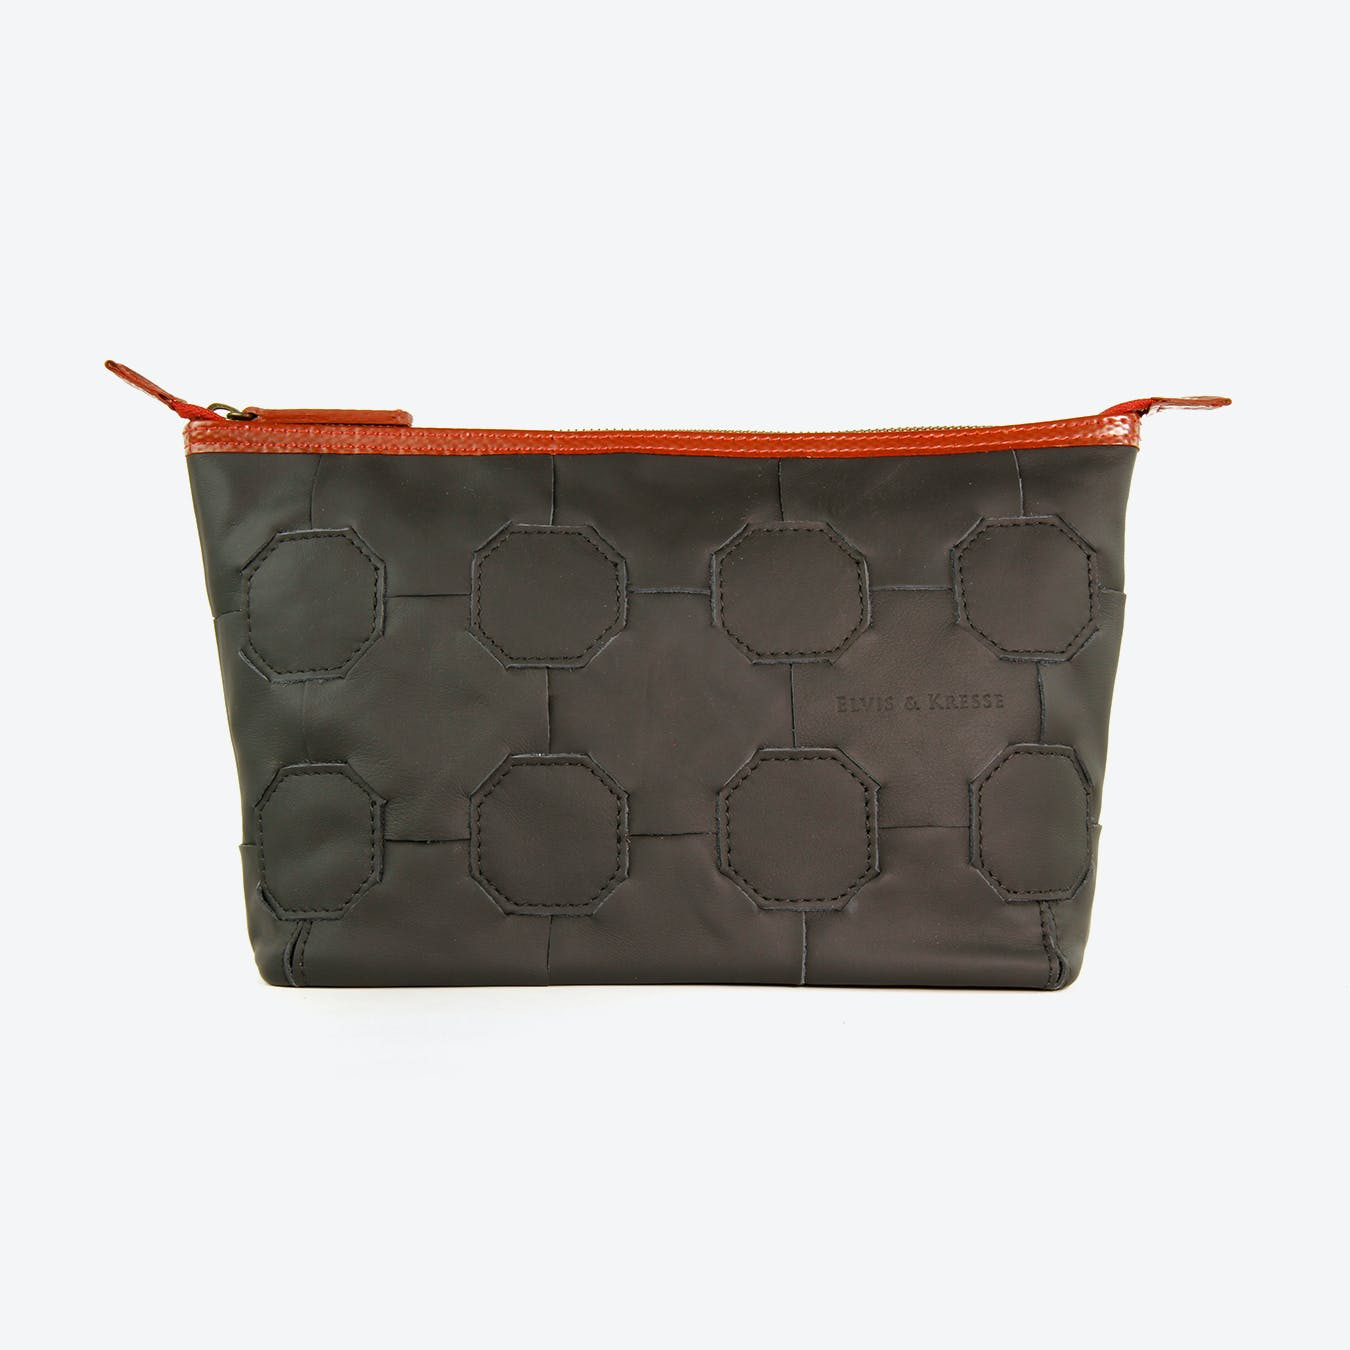 Fire & Hide Cosmetics Case in Black Burberry Leather